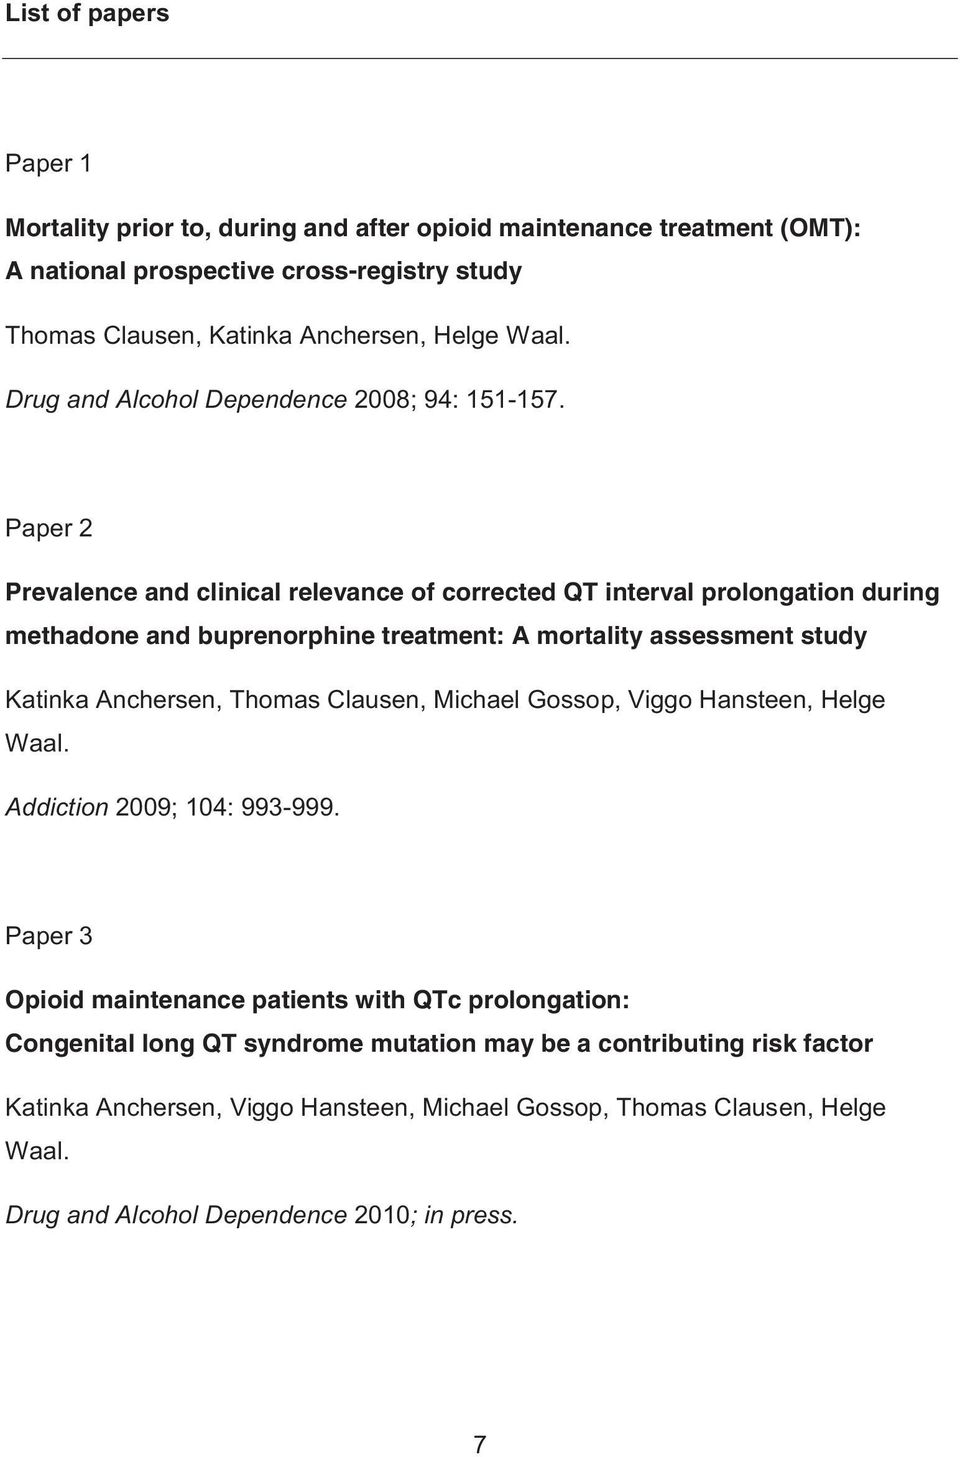 Paper 2 Prevalence and clinical relevance of corrected QT interval prolongation during methadone and buprenorphine treatment: A mortality assessment study Katinka Anchersen, Thomas